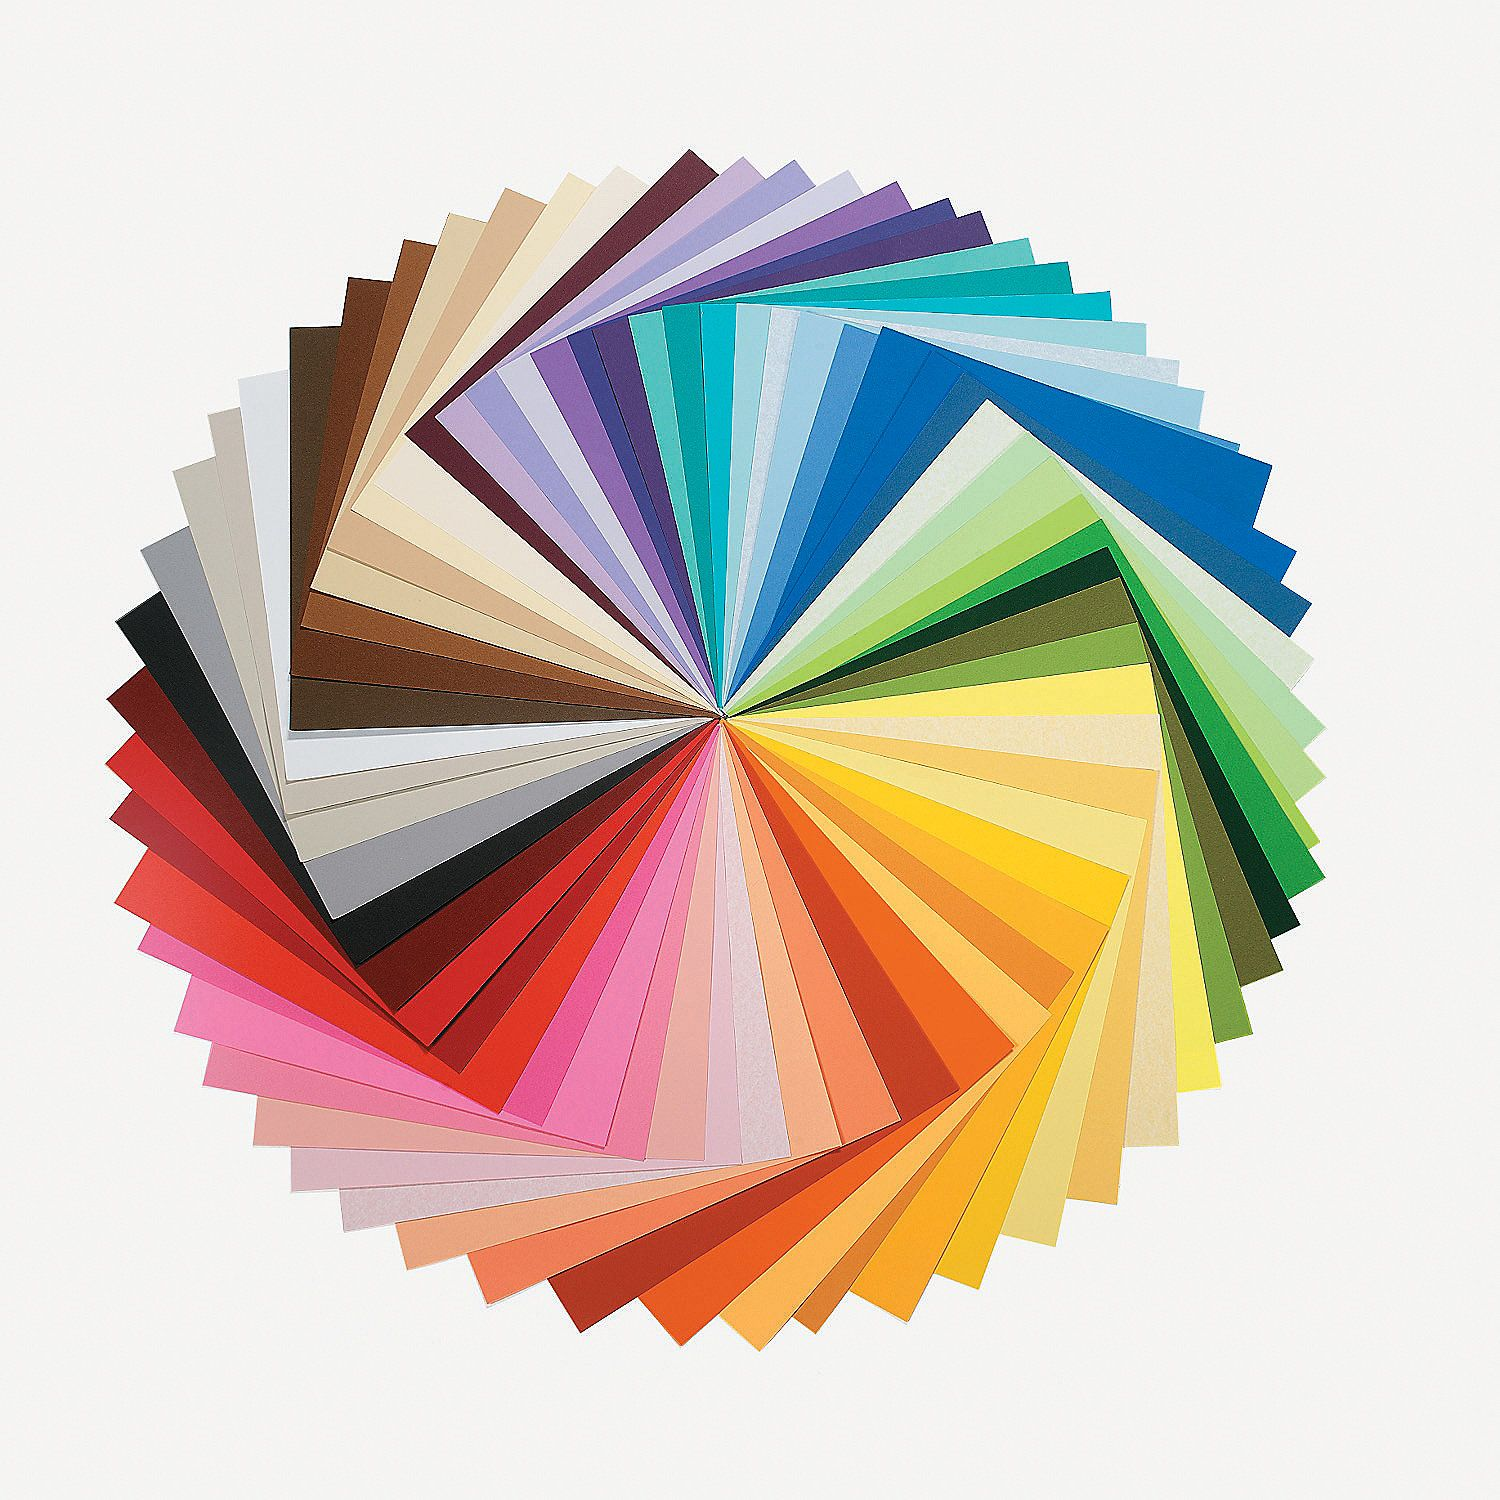 Full color spectrum paper pack spectrum oriential trading and give scrapbooking pages diy projects and arts and crafts adventures a brilliant burst of color thanks to this full color spectrum paper pack jeuxipadfo Images